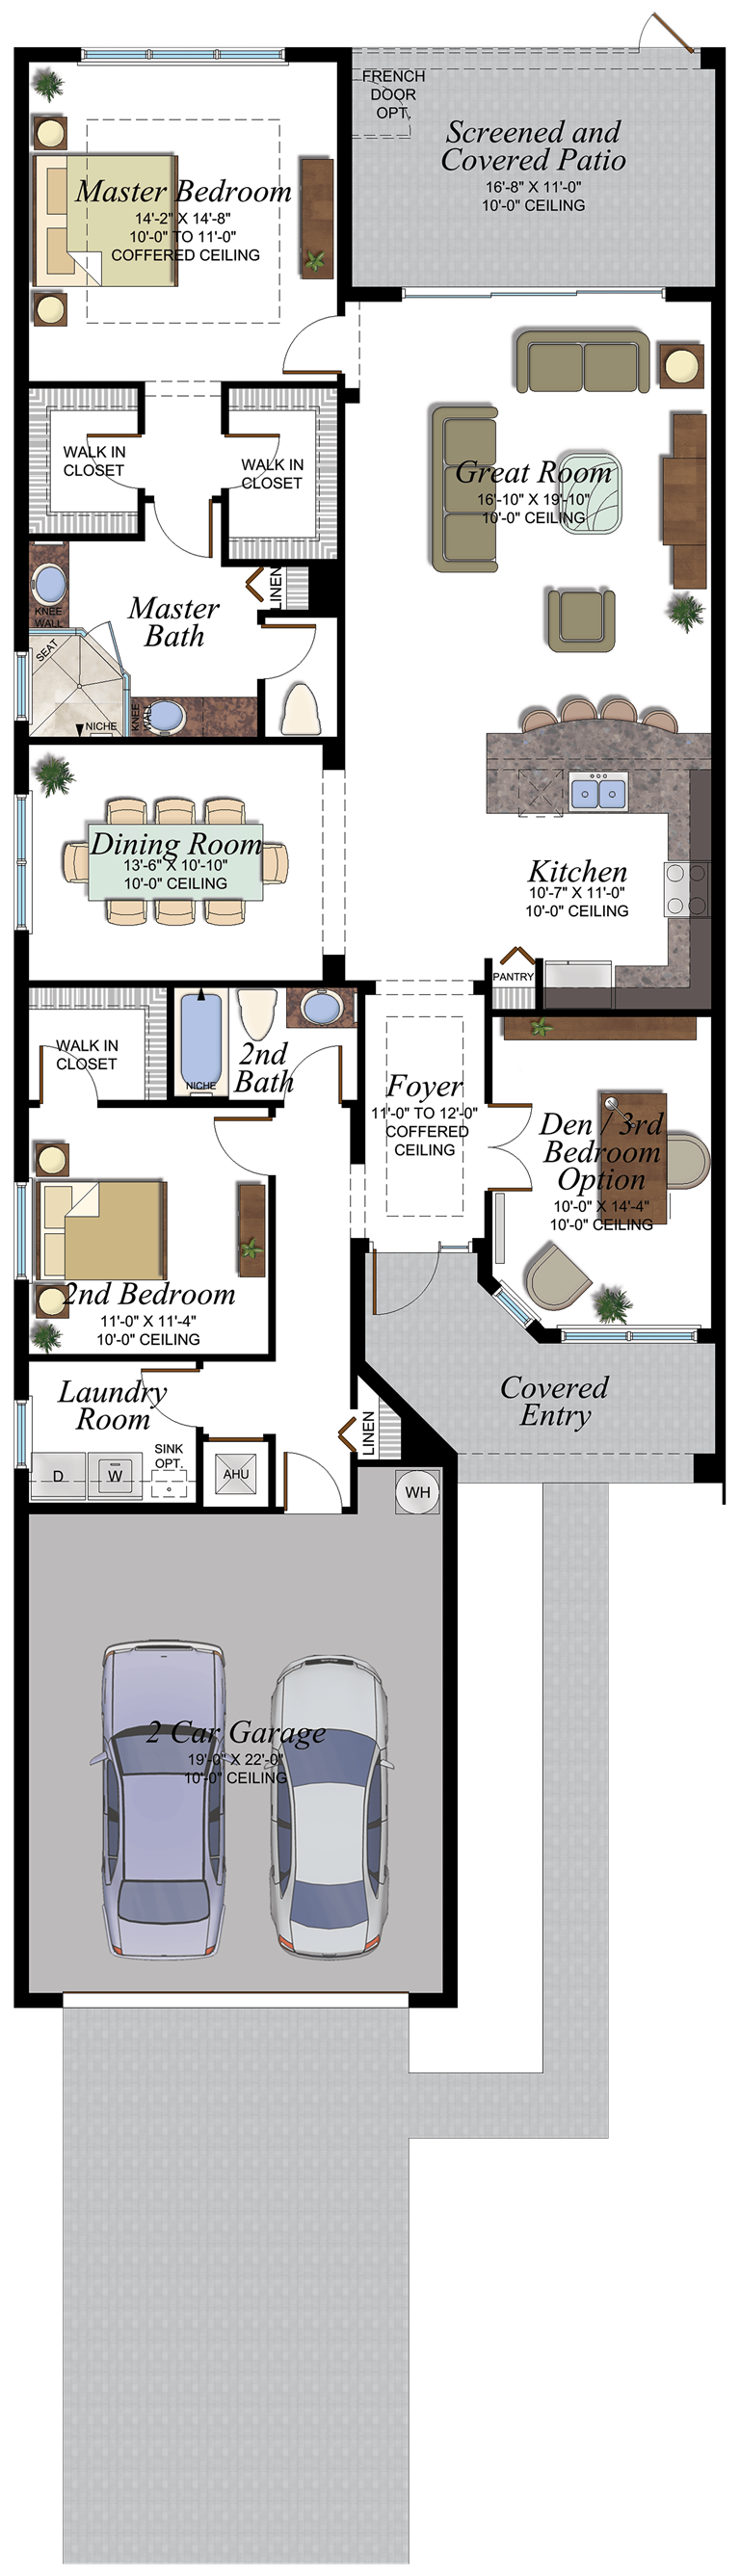 33 Oxford floorplan